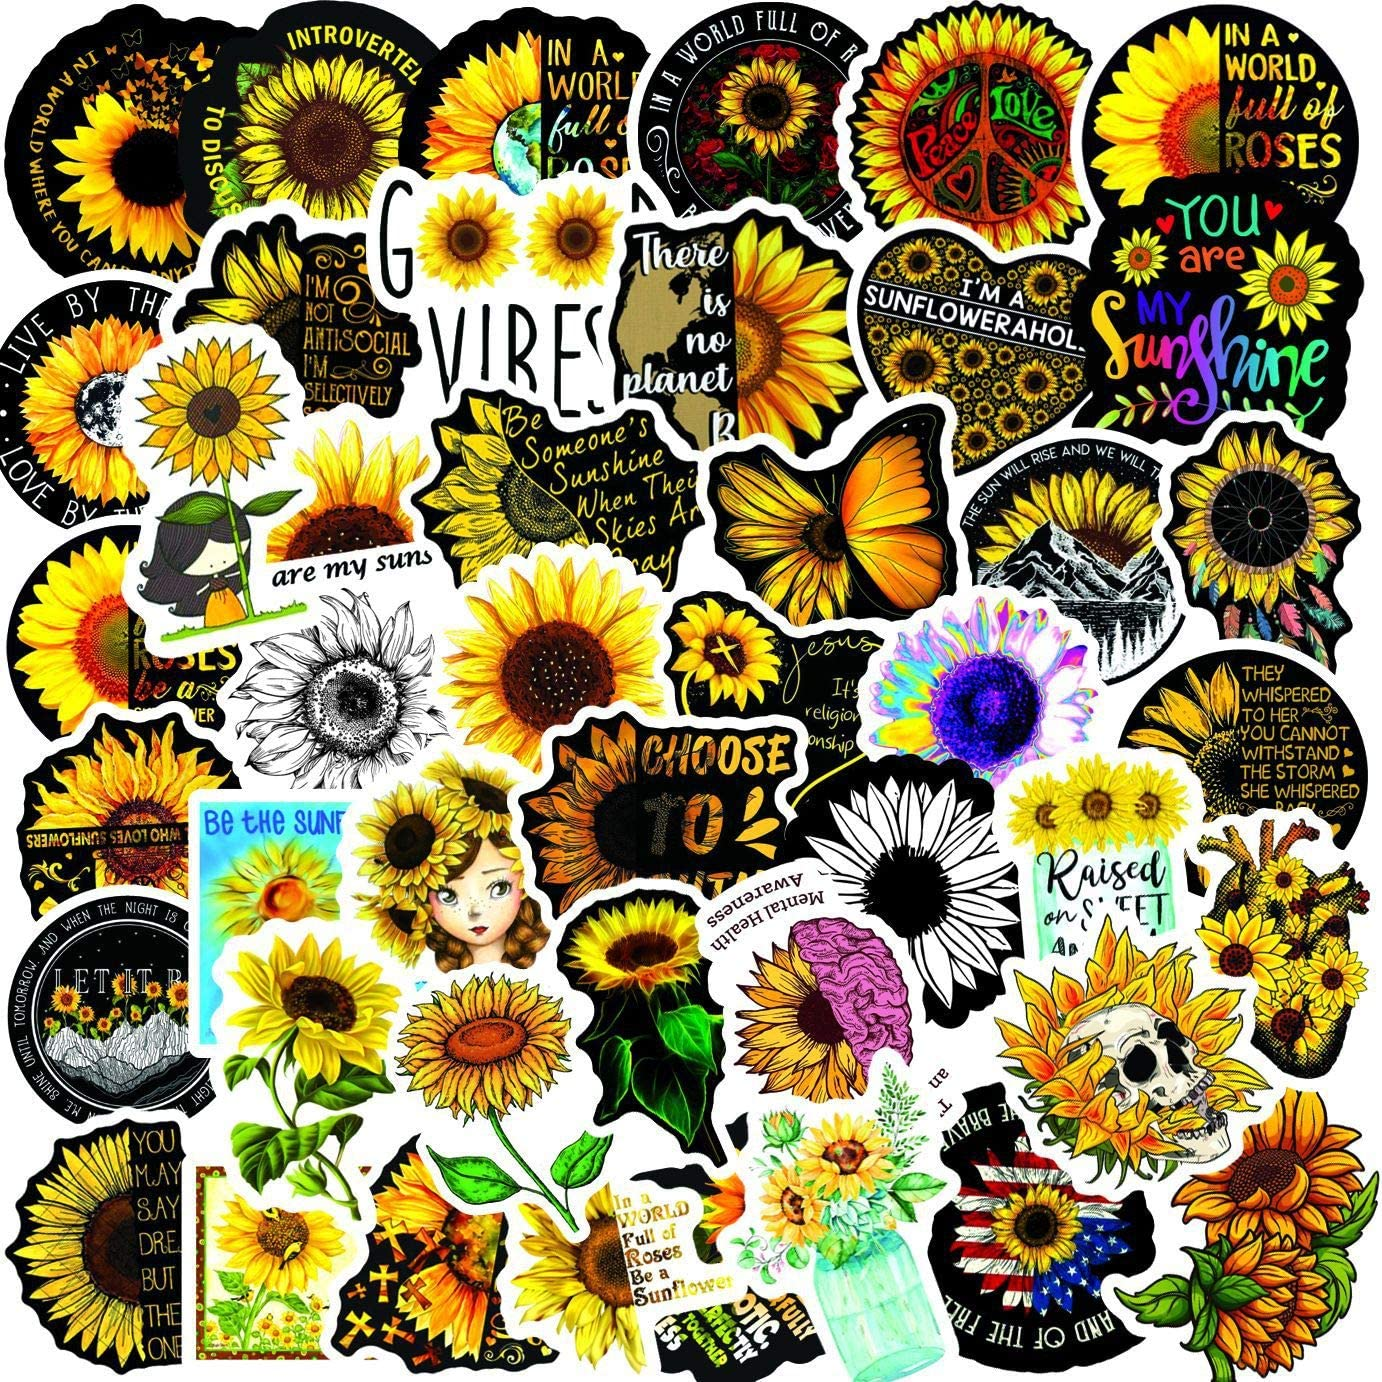 Sunflower Stickers Pack of 50 Yellow Sunshine Flowers Cute Sticker for Teens Adults Walls Laptops Skateboards Computers Phones Guitars Water Bottles